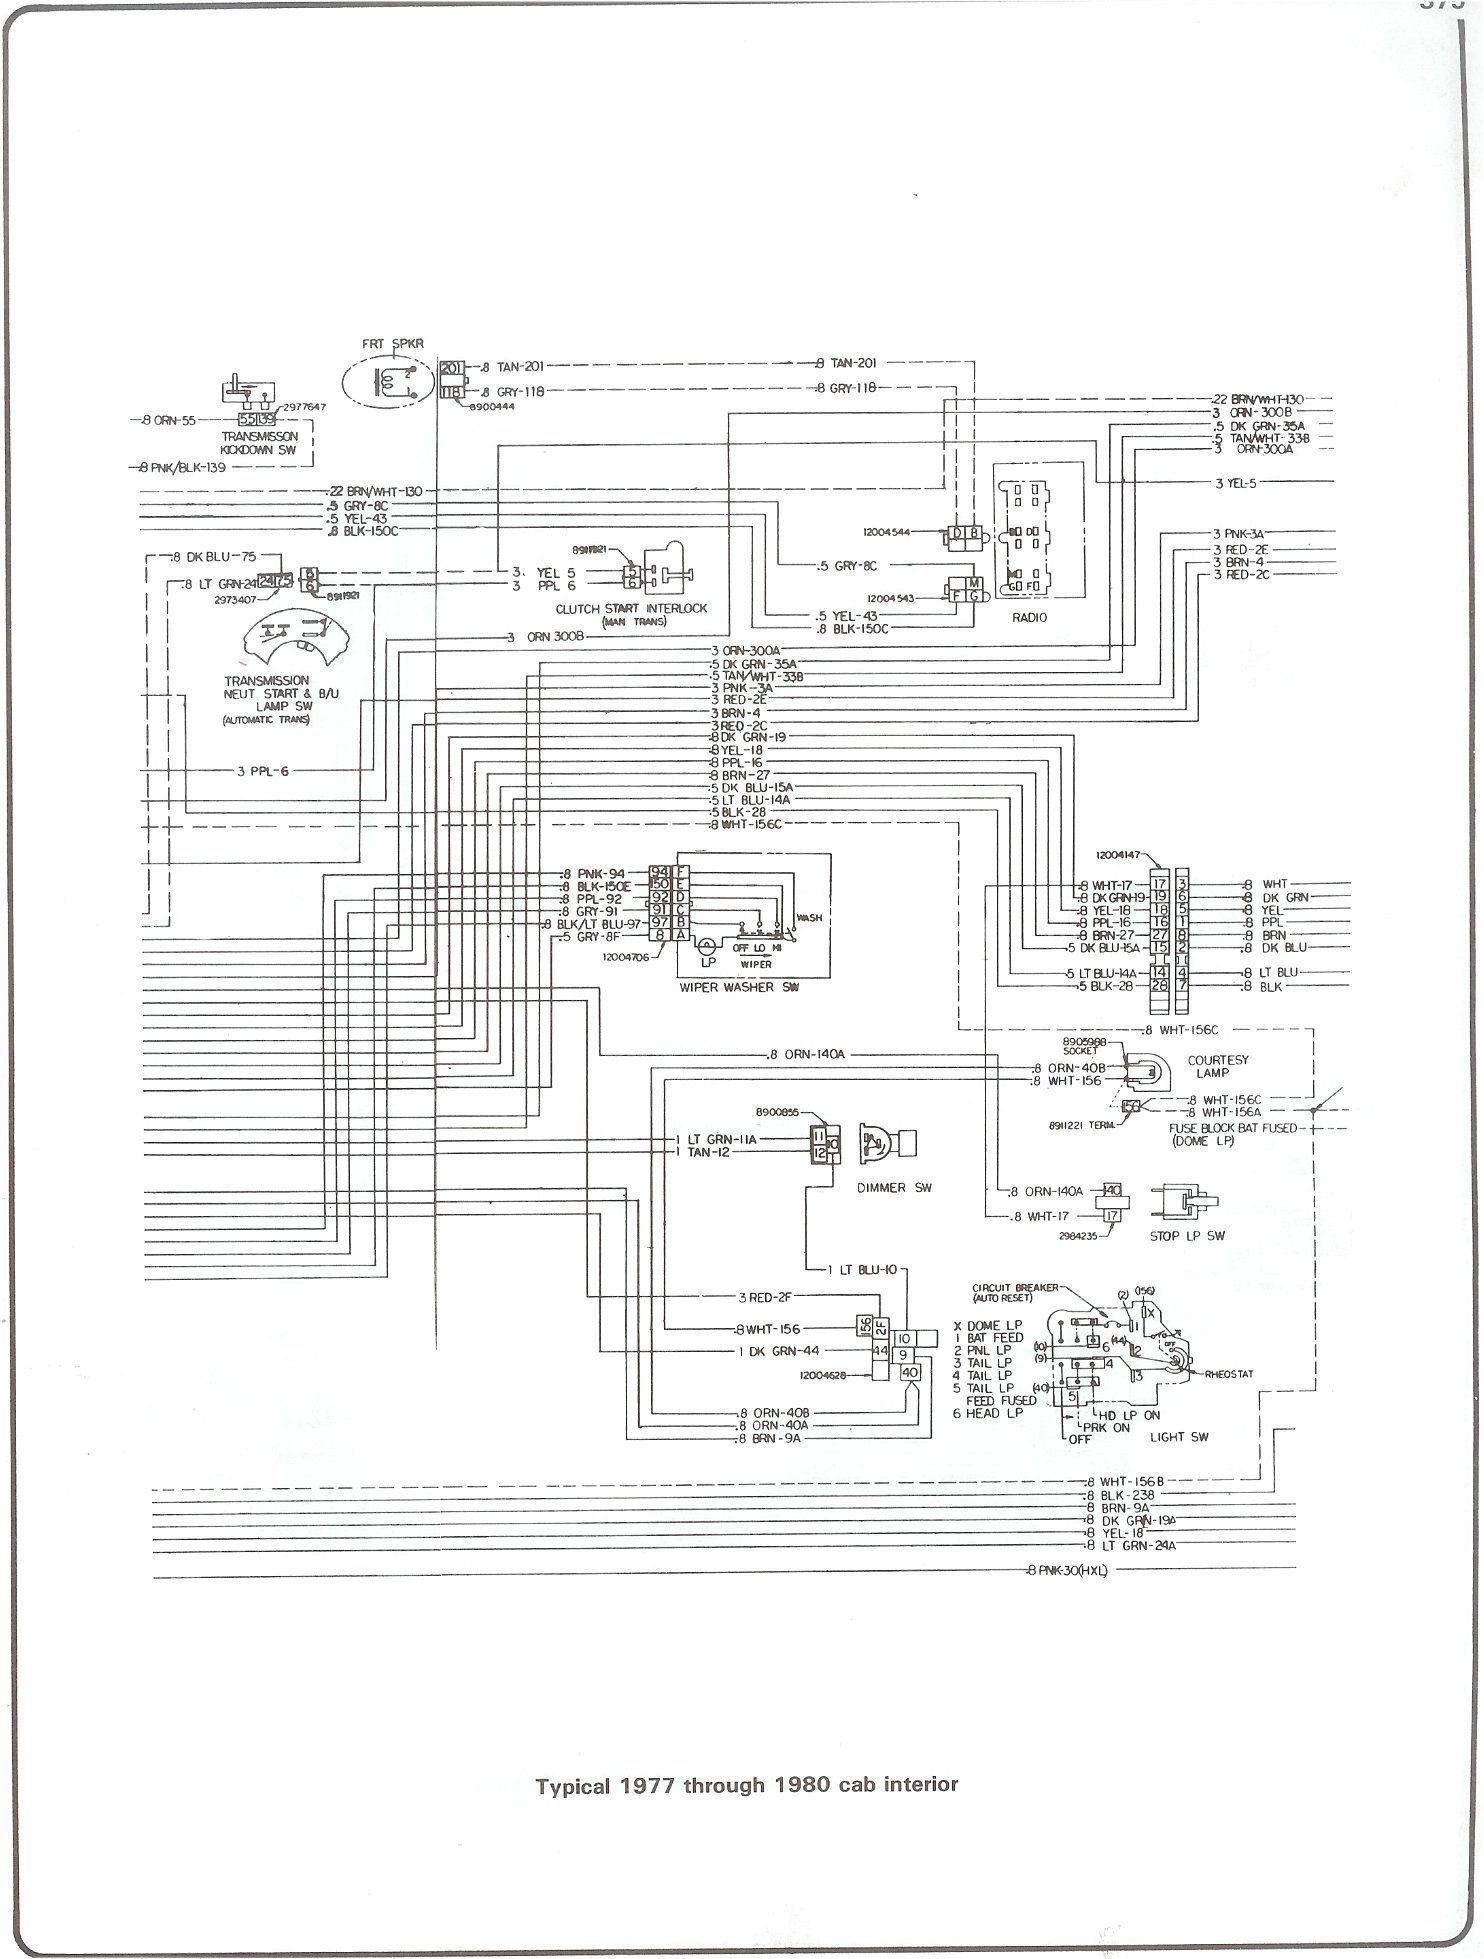 77 80_cab_inter complete 73 87 wiring diagrams 2008 Chevy Silverado Wiring Diagram at panicattacktreatment.co